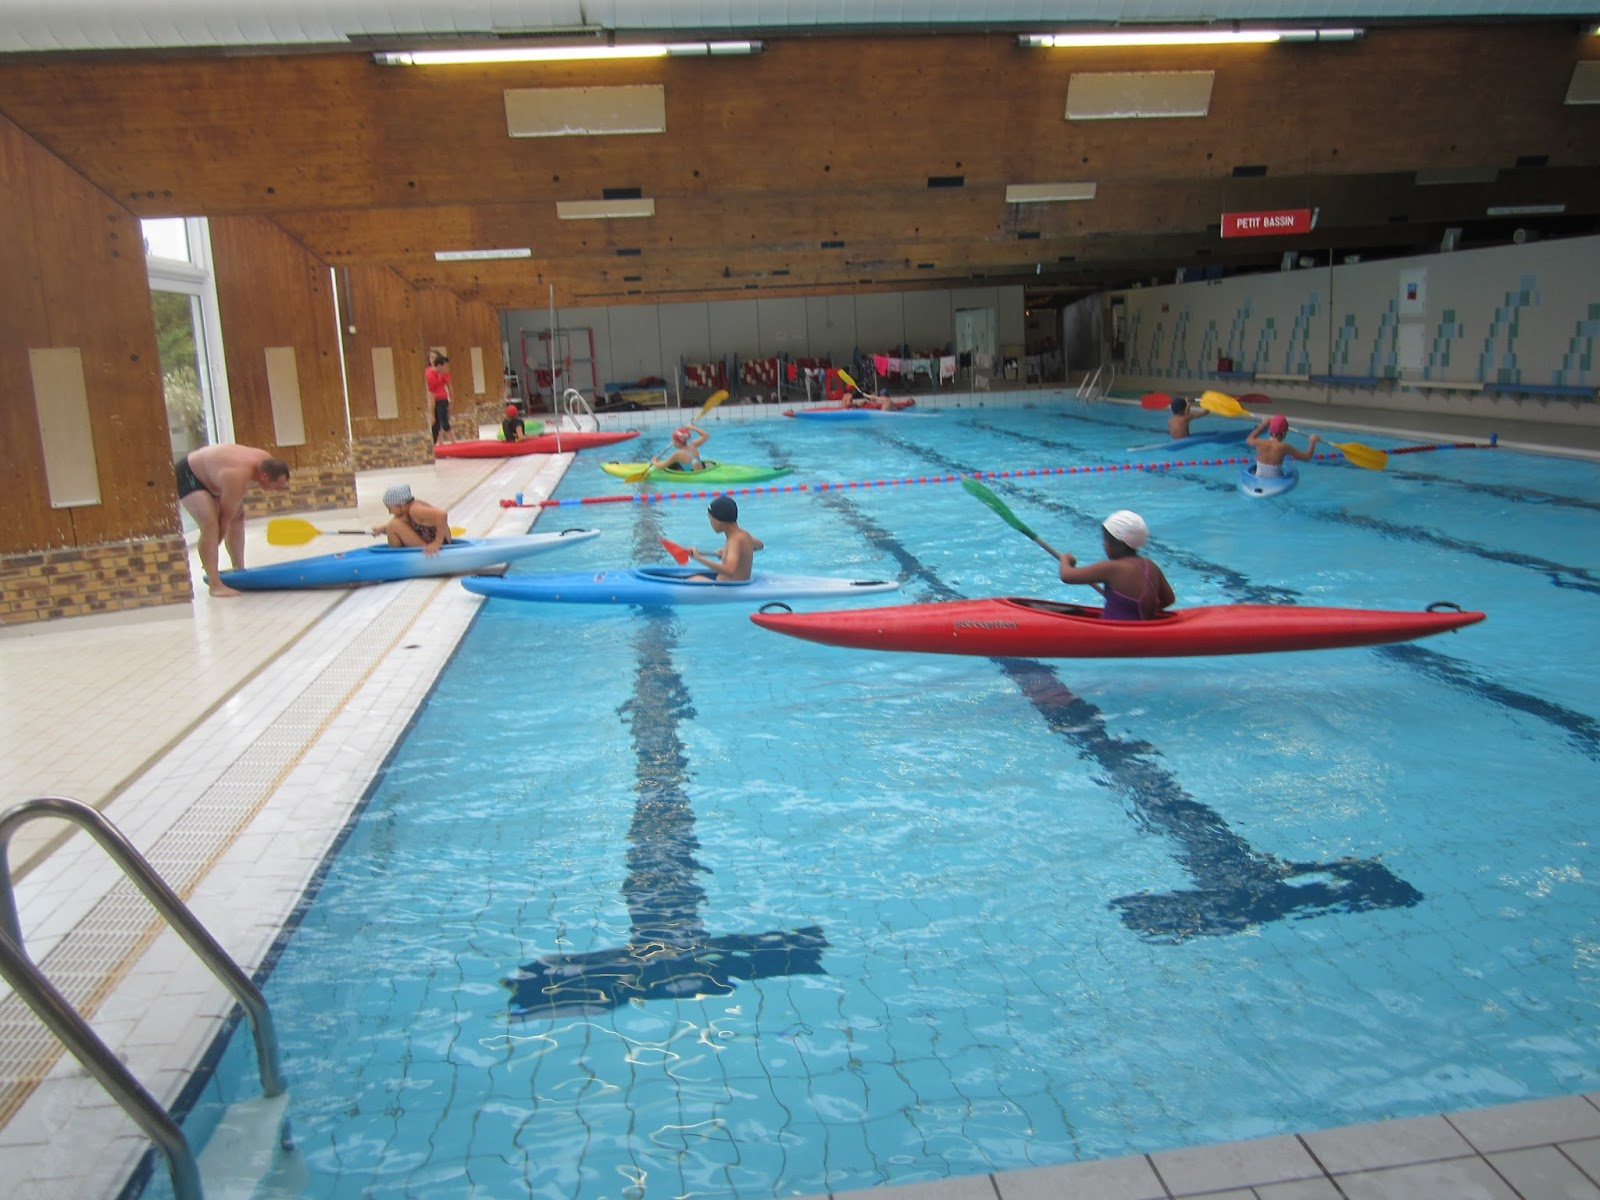 St andr classe de cm2 kayak test piscine for Test de piscine